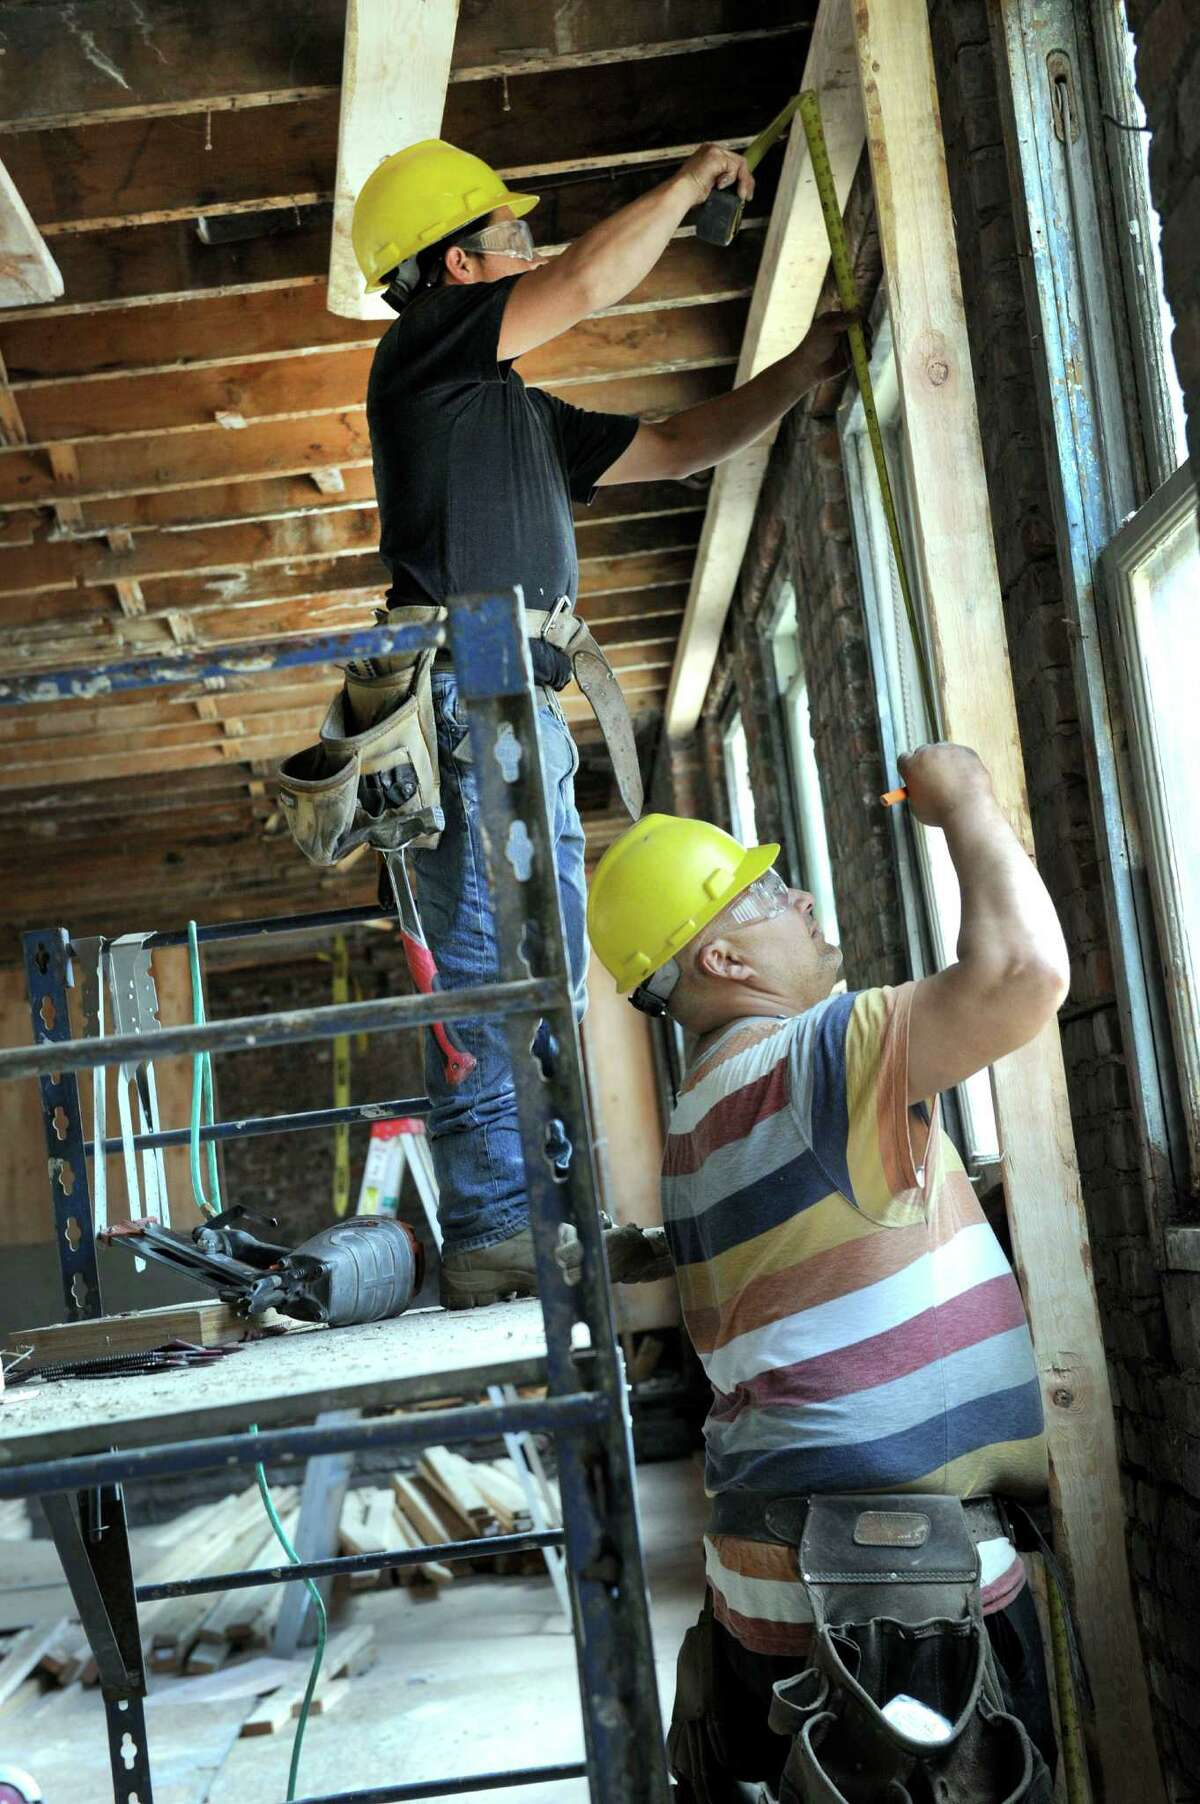 """Manuel Guzman, left, and Marcelo Moura work on the inside space of the Pershing Building Wednesday, June 17. The Pershing Building at the corner of Main and West Streets in Danbury is being fitted for a """"future tenant"""" Wednesday, June 17, 2015. Joe DaSilva, the building's owner, can't say who it is but Naugatuck Valley Community College has already said that's where they intend to expand."""